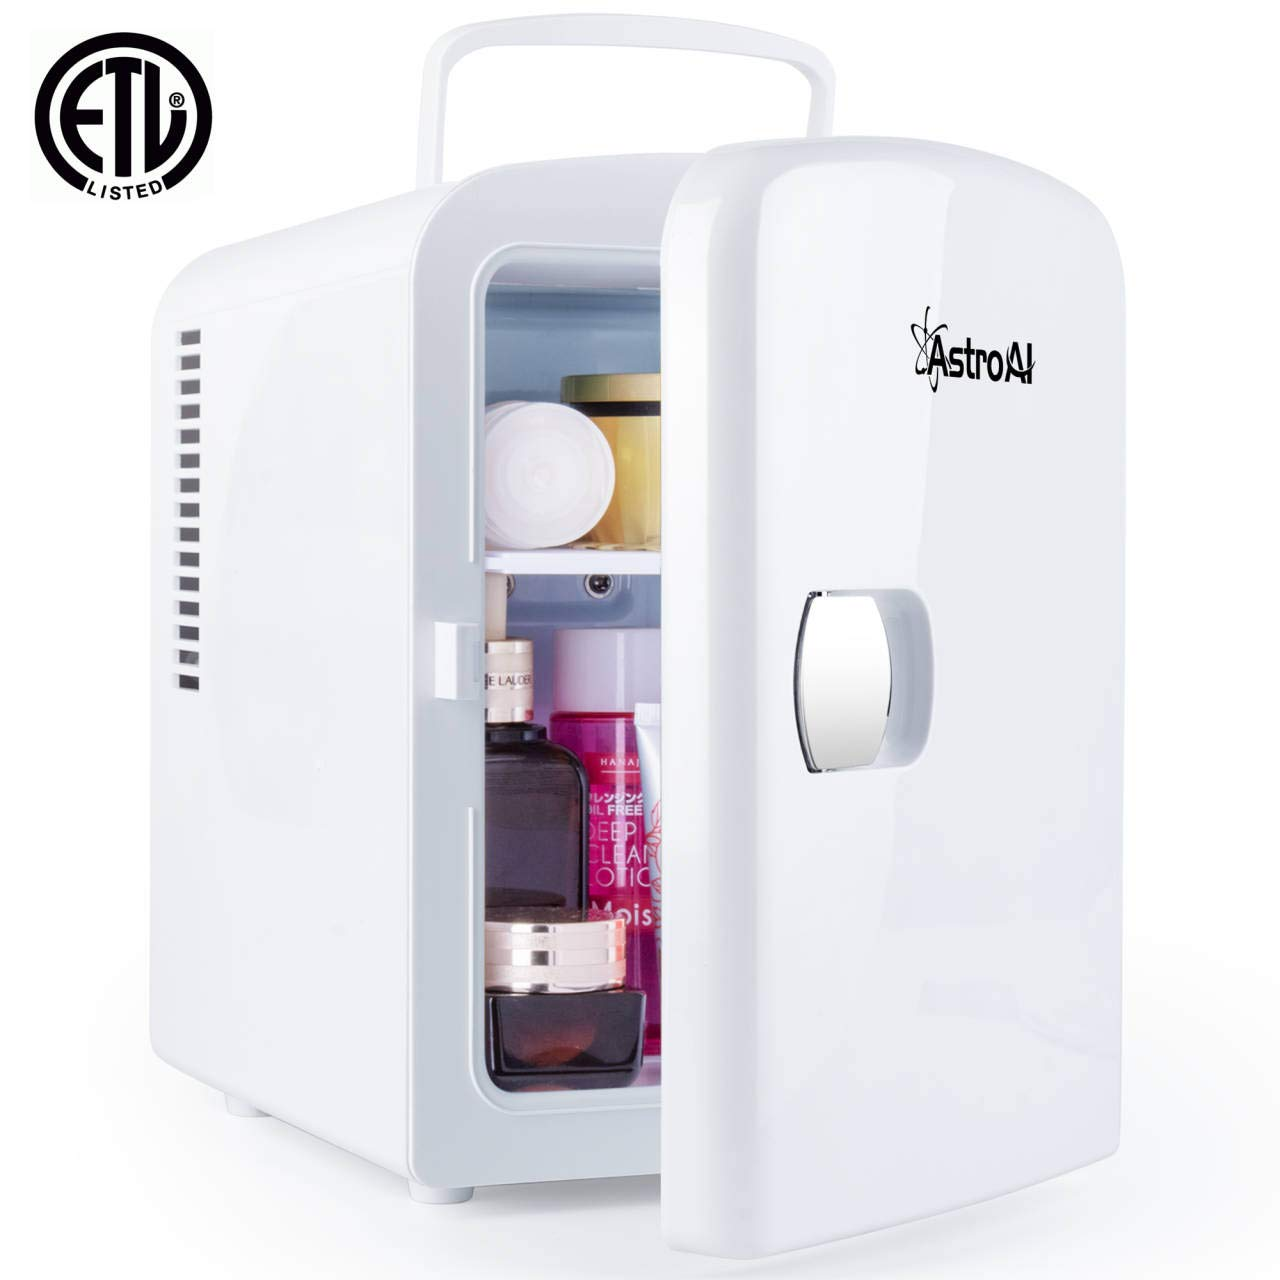 AstroAI - AstroAI Mini Fridge 4 Liter/6 Can AC/DC Portable Thermoelectric Cooler and Warmer for Skincare, Breast Milk, Foods, Medications, Bedroom and Travel (White)